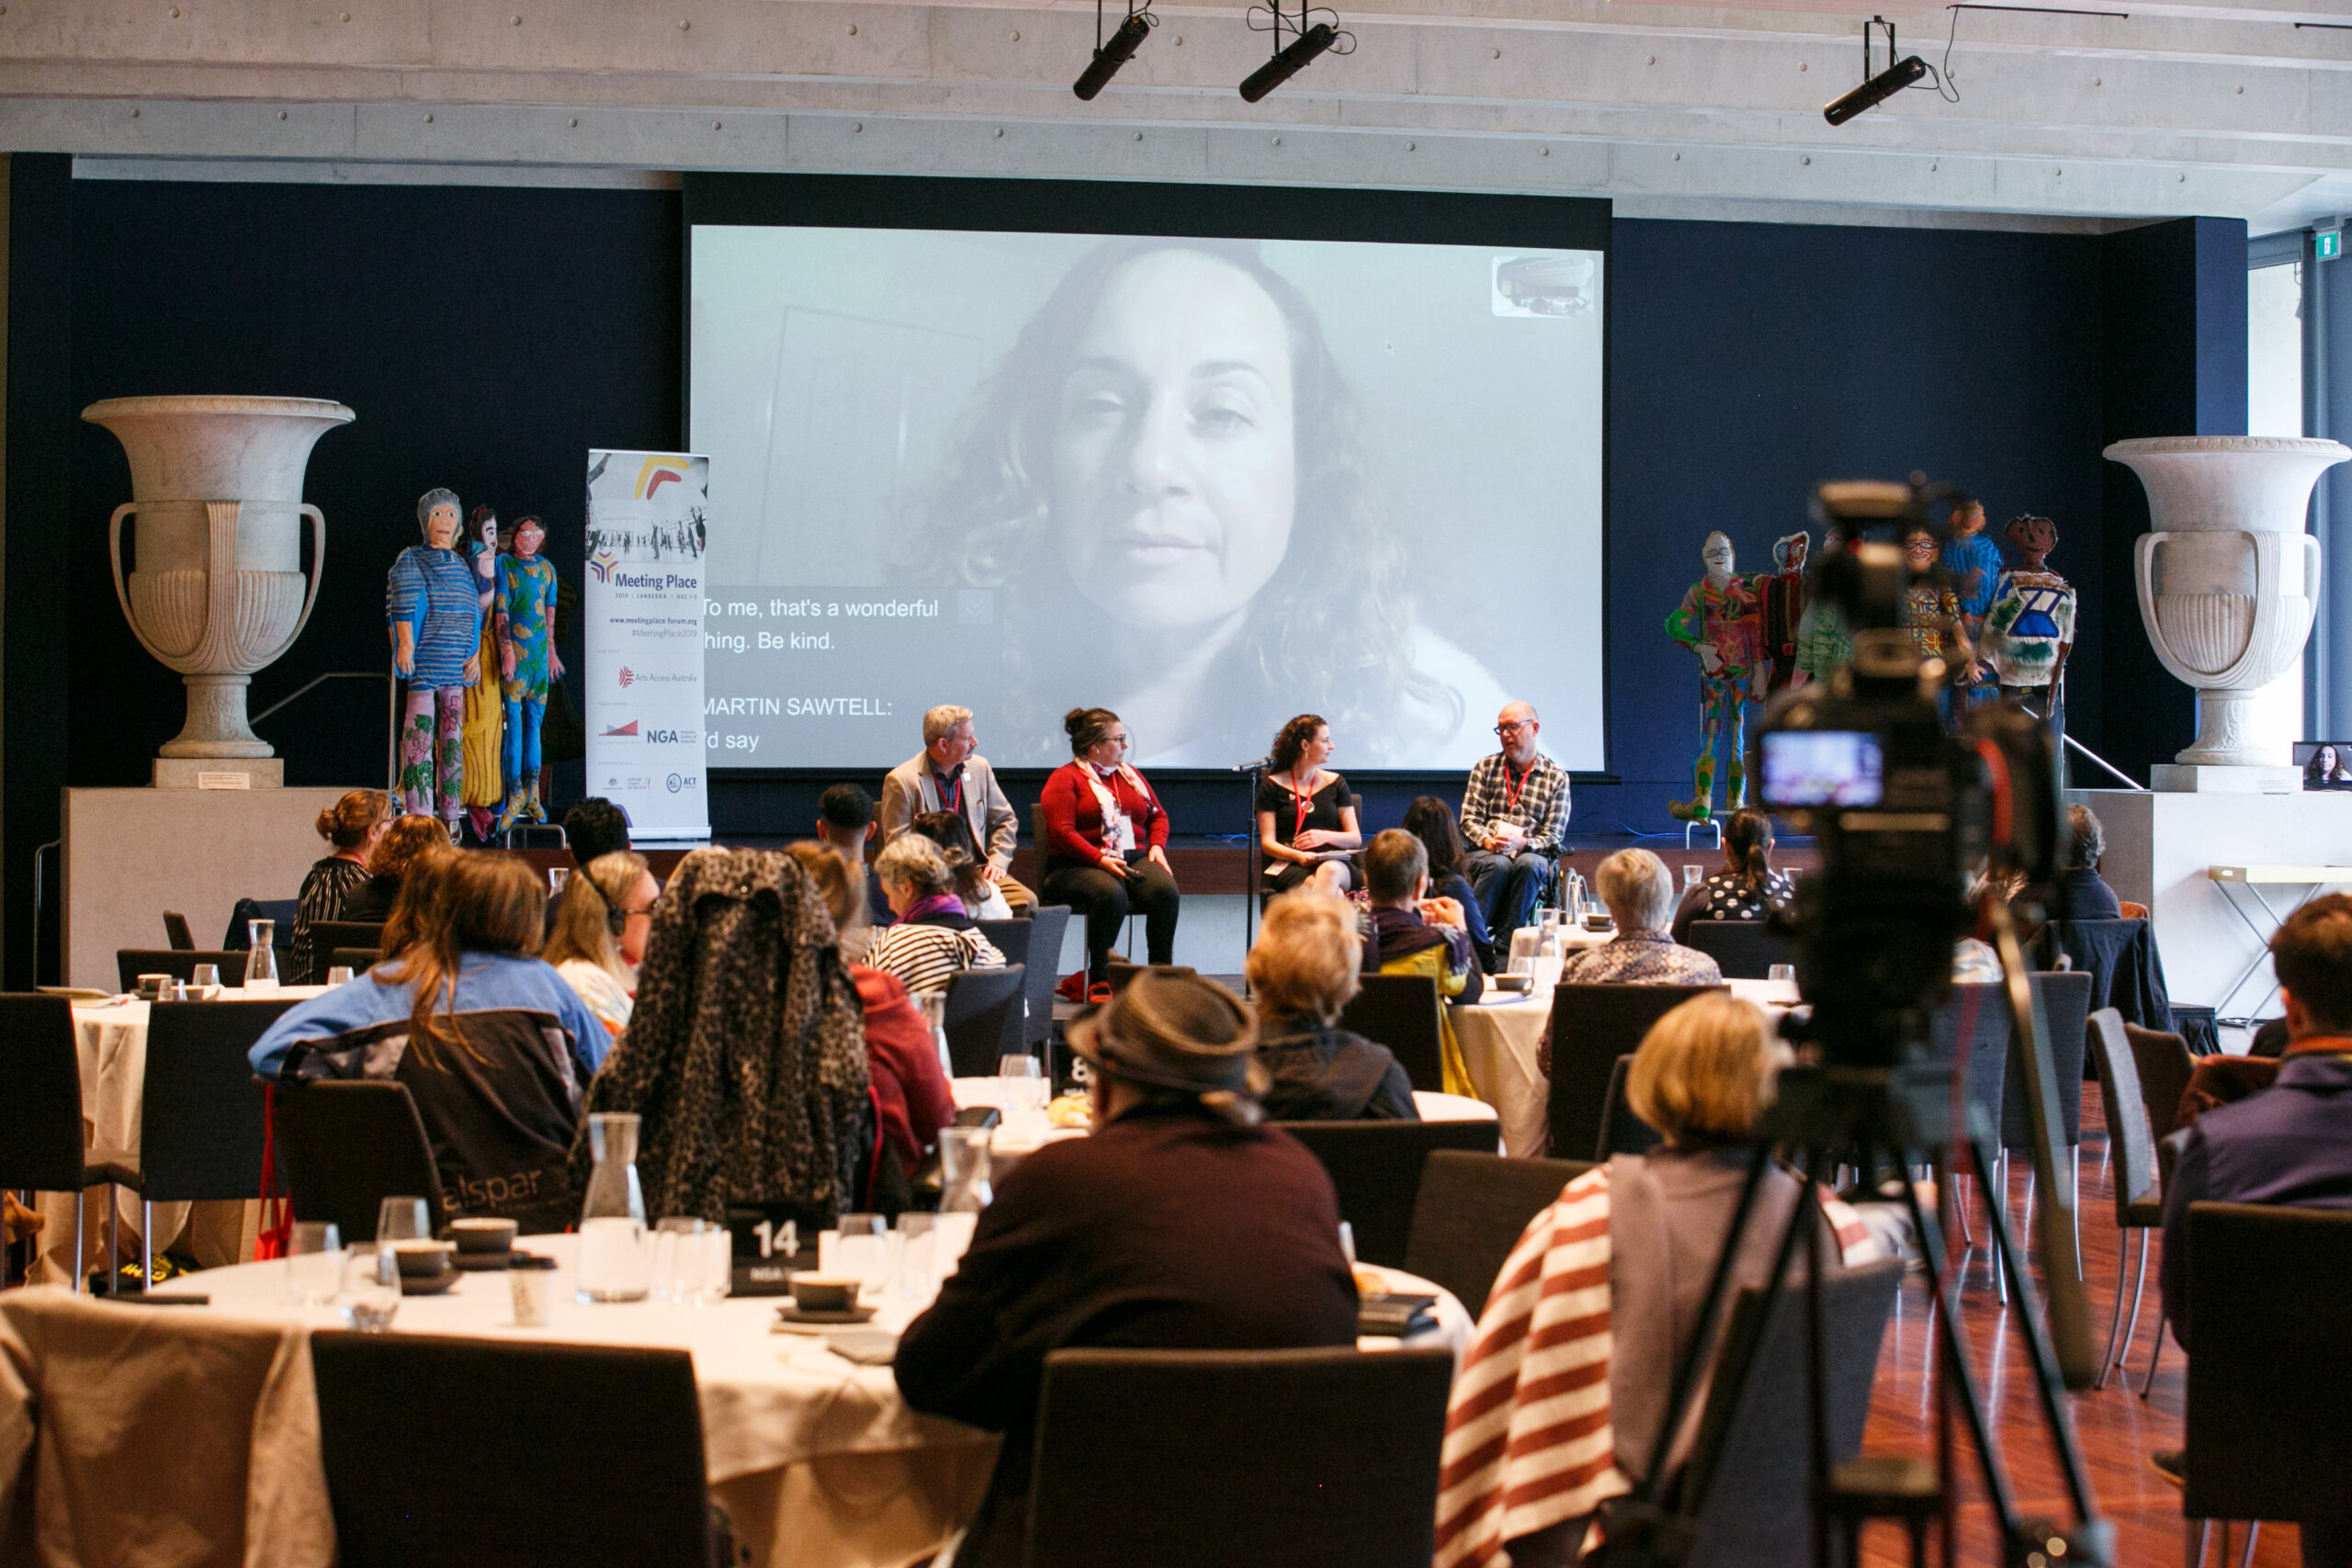 A conference room with people seated at round tables looking towards a stage. On the stage sits four people. Behind them is a large screen with a woman on a video call projected onto it. In the foreground on the right is a film camera on a tripod, filming the panel discussion.